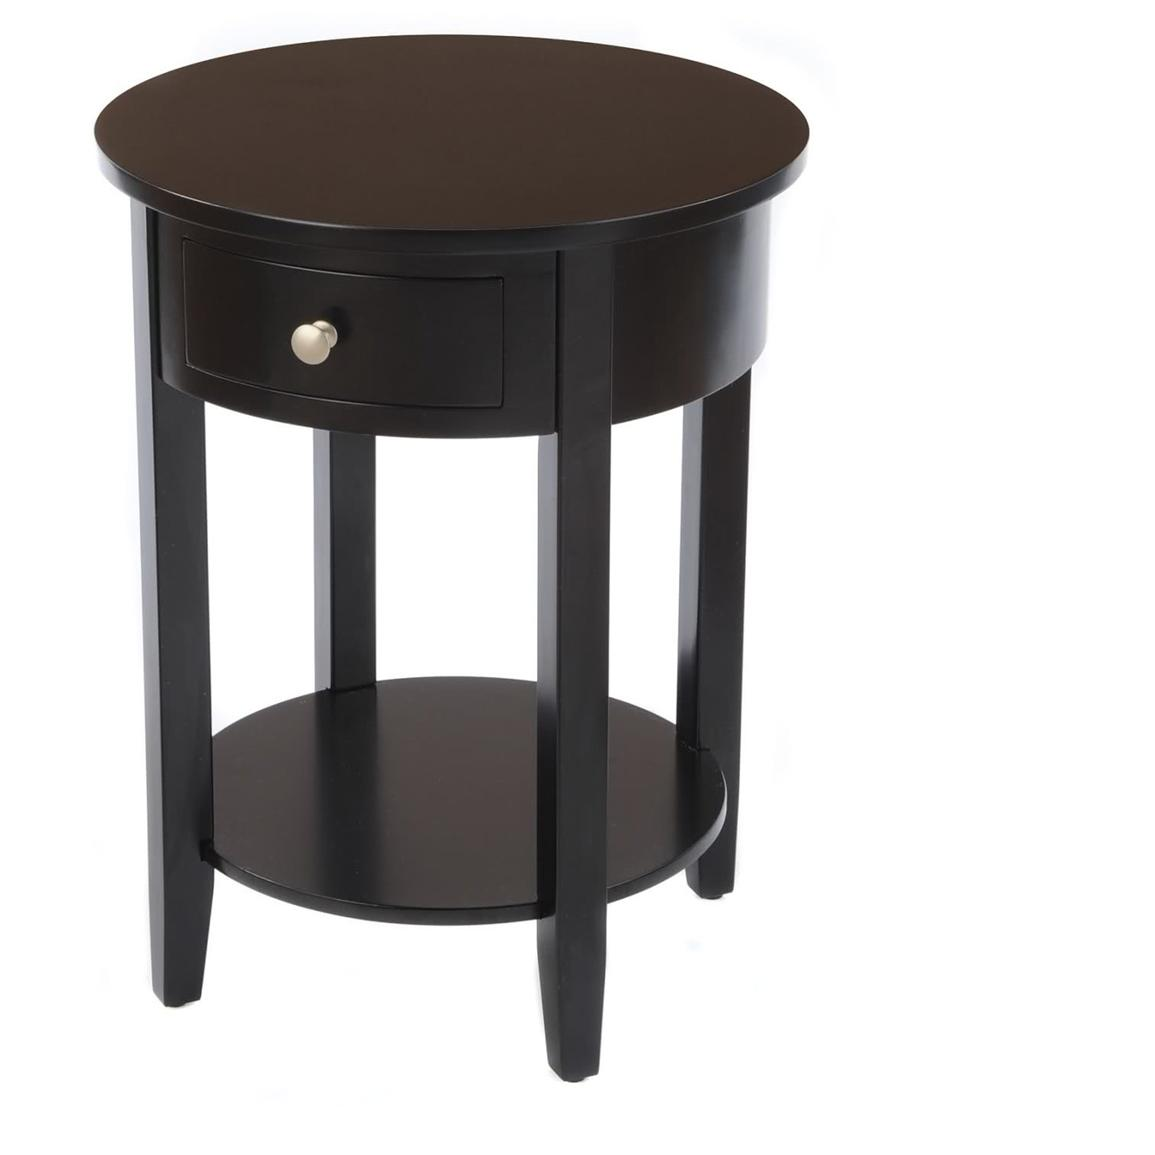 Circular End Tables Round Side Table With Drawer 236468 Living Room At